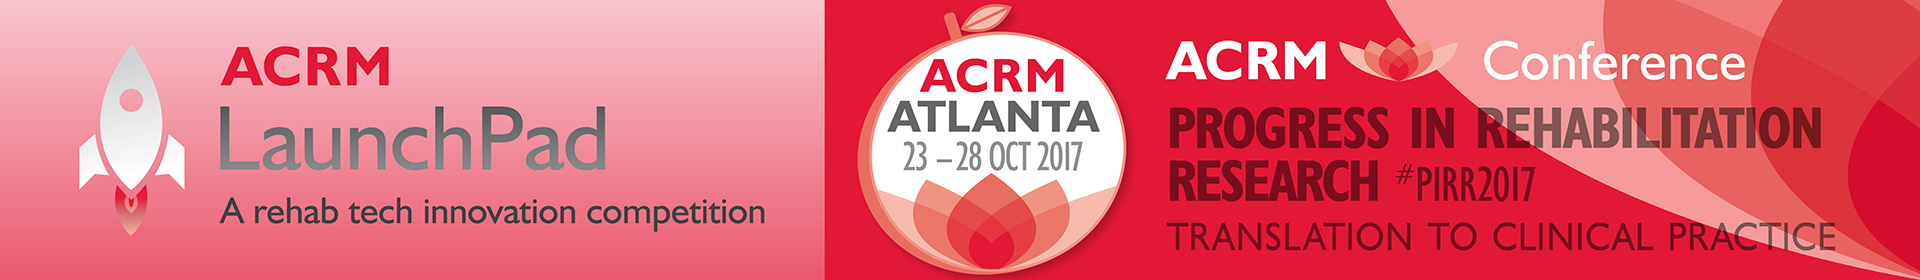 ACRM LaunchPad: A rehab tech innovation competition